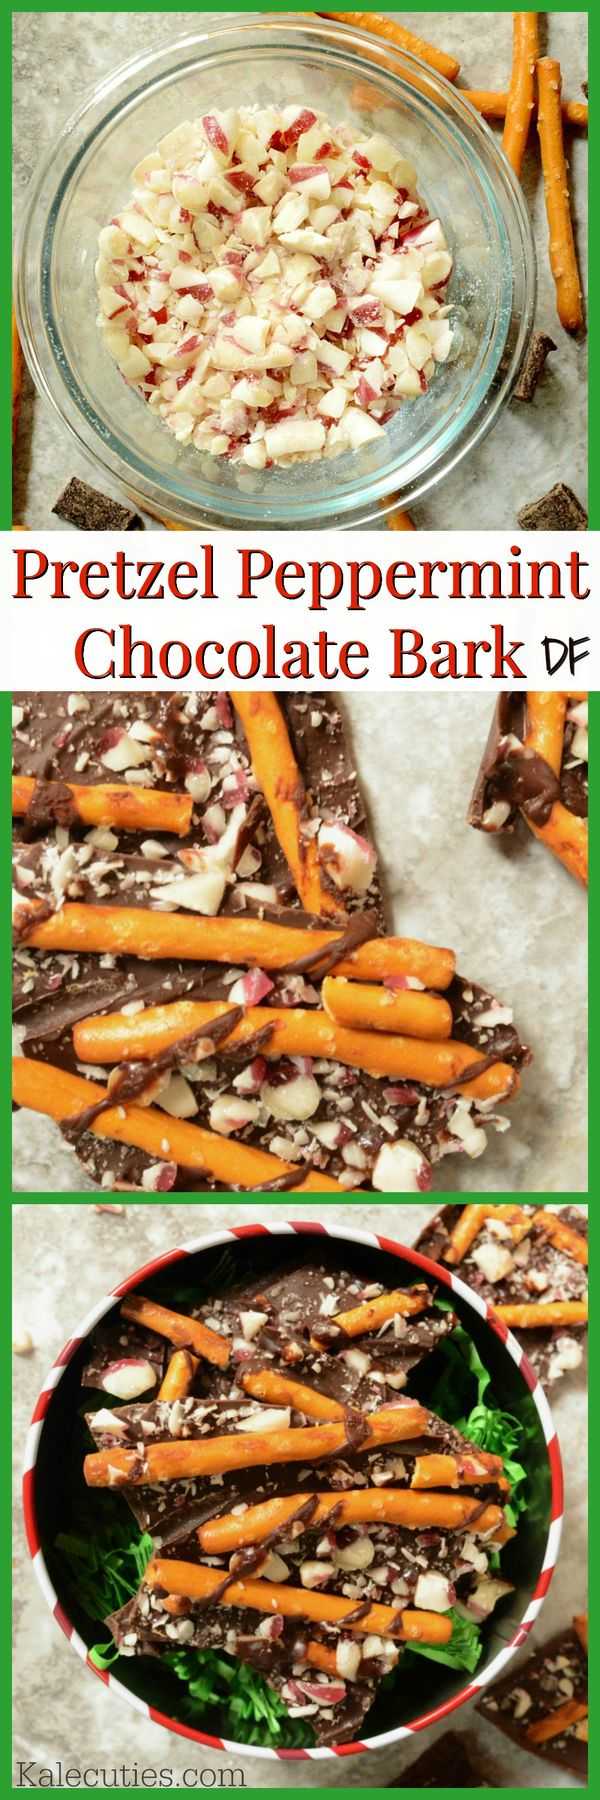 Dairy-free Pretzel Peppermint Chocolate Bark